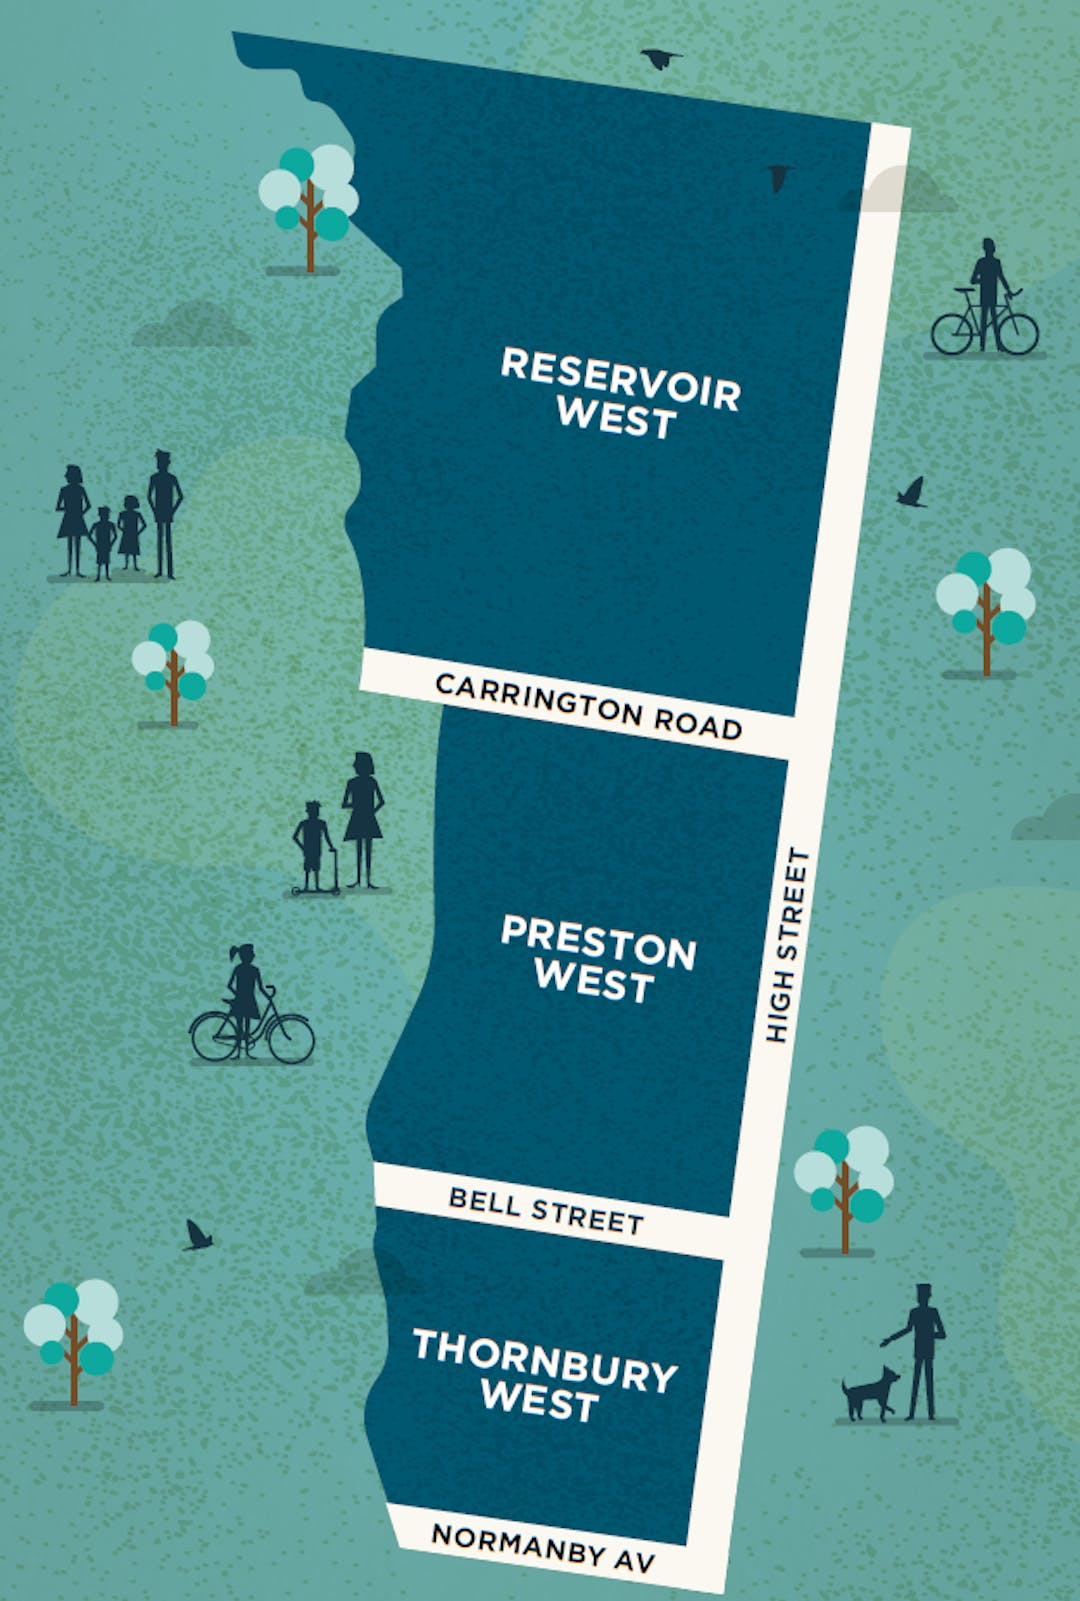 Map of Area A of the Your Street, Your Say project showing Reservoir West, Preston West and Thornbury West